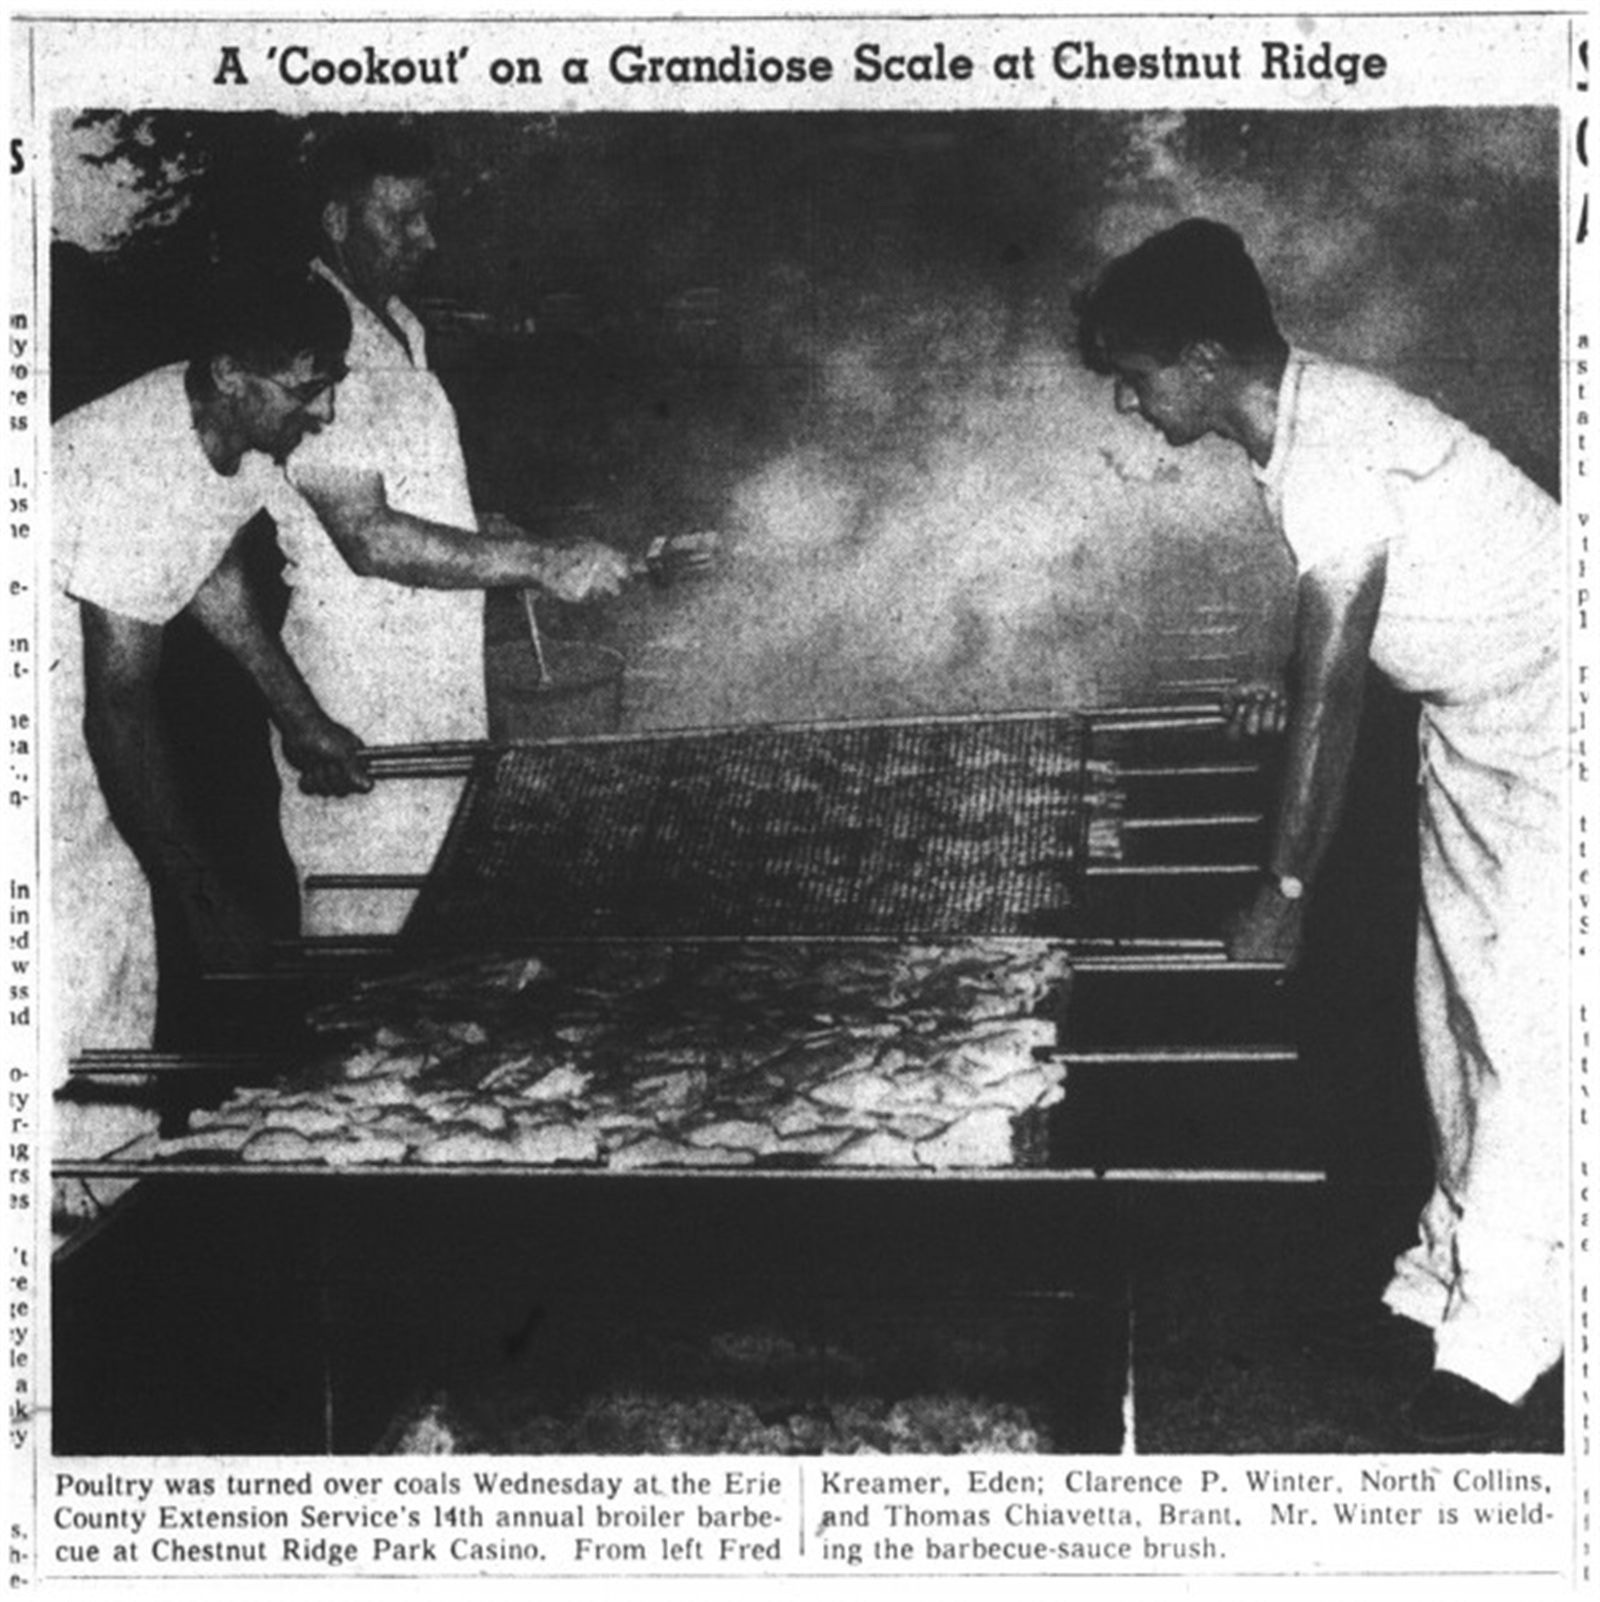 Family patriarch Thomas Chiavetta, who died in 1988, is seen in this 1959 photo manning the grill in much the same way his family still does today. (Although judging by the headline, the idea of a Chiavettau2019s barbecue was novel at the time.)